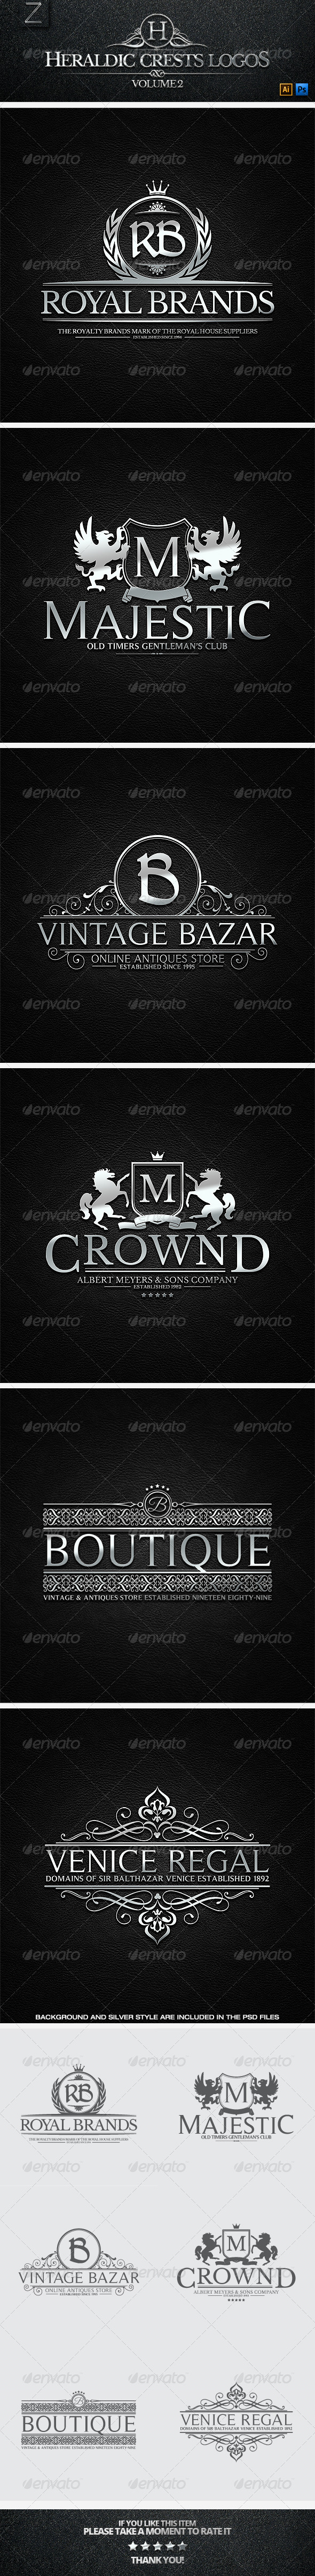 GraphicRiver Crest Logos Vol.2 7472402